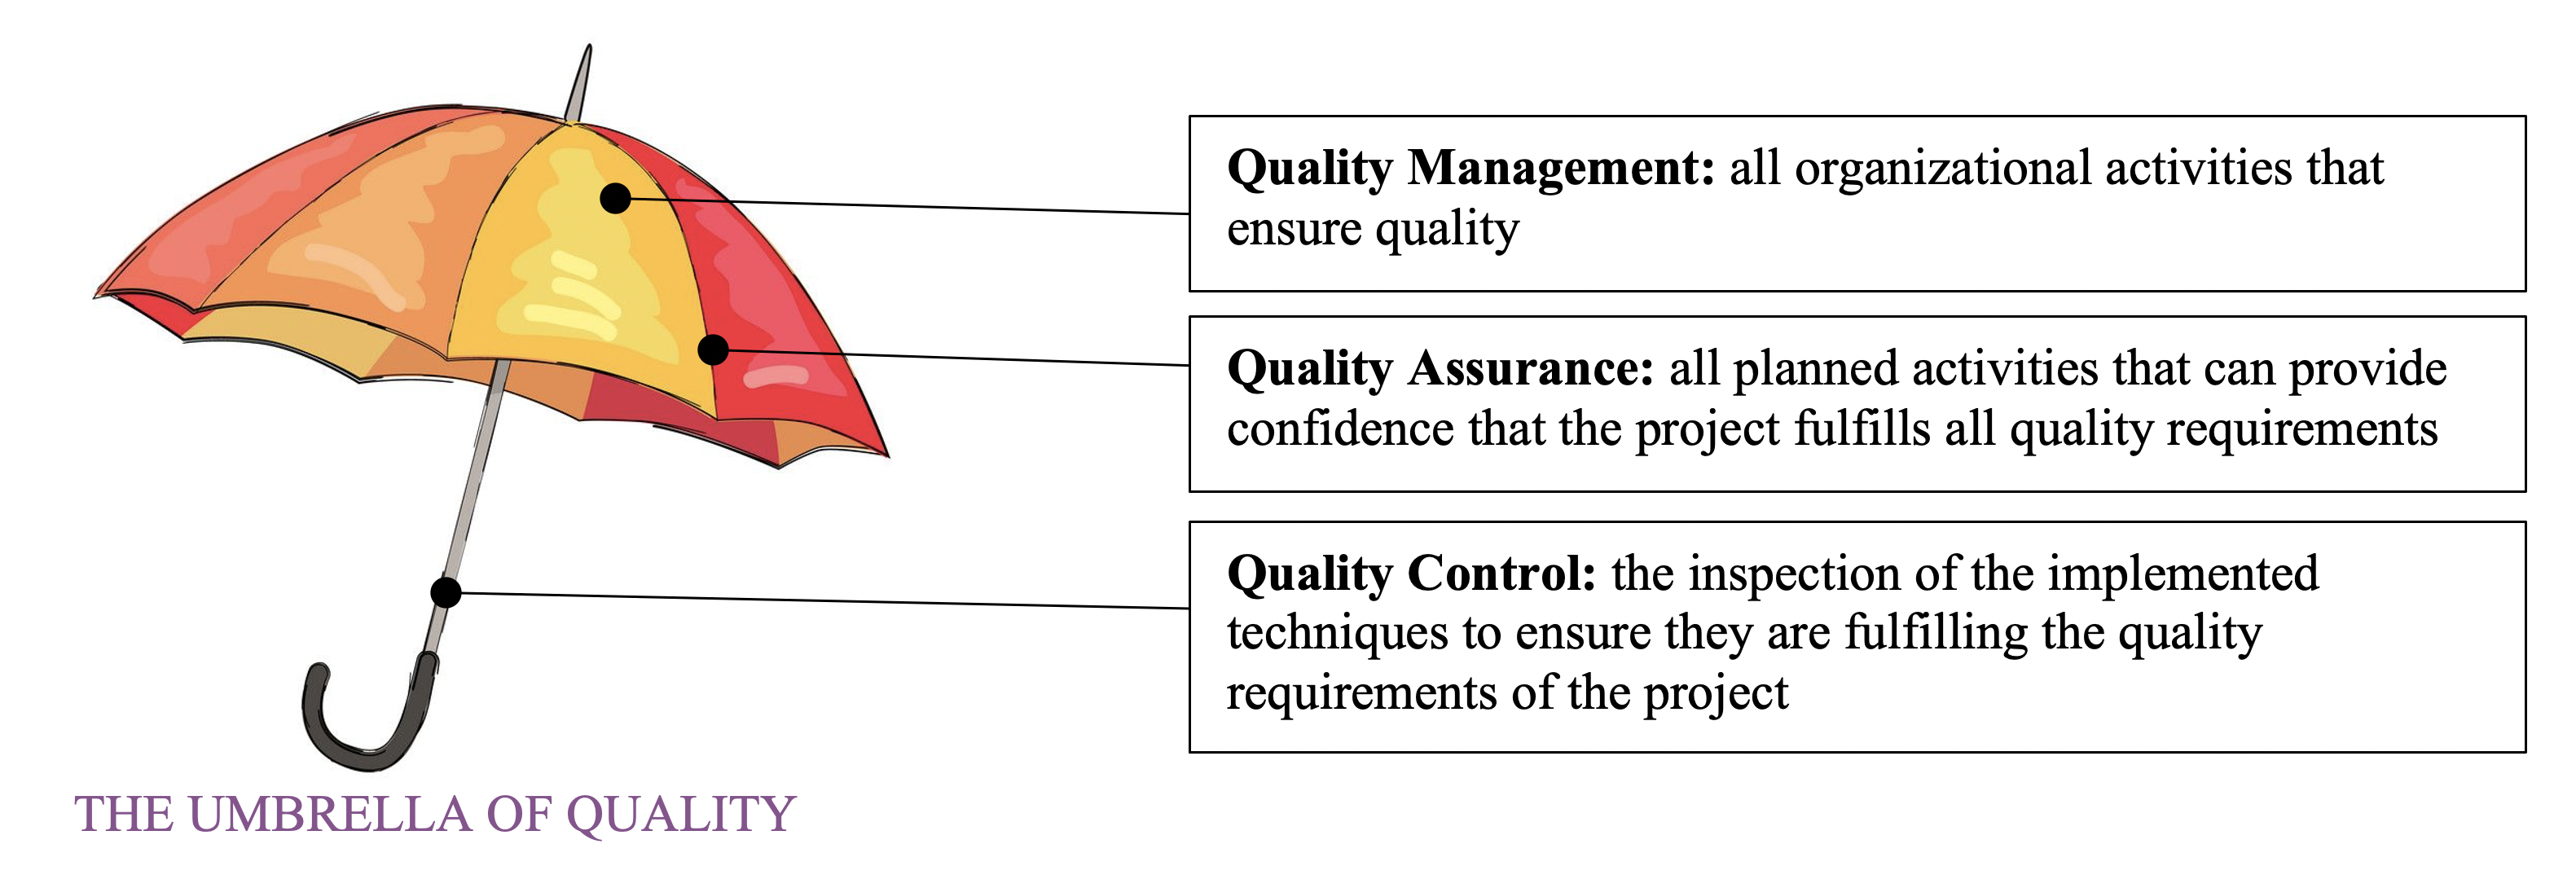 principles of construction quality management system